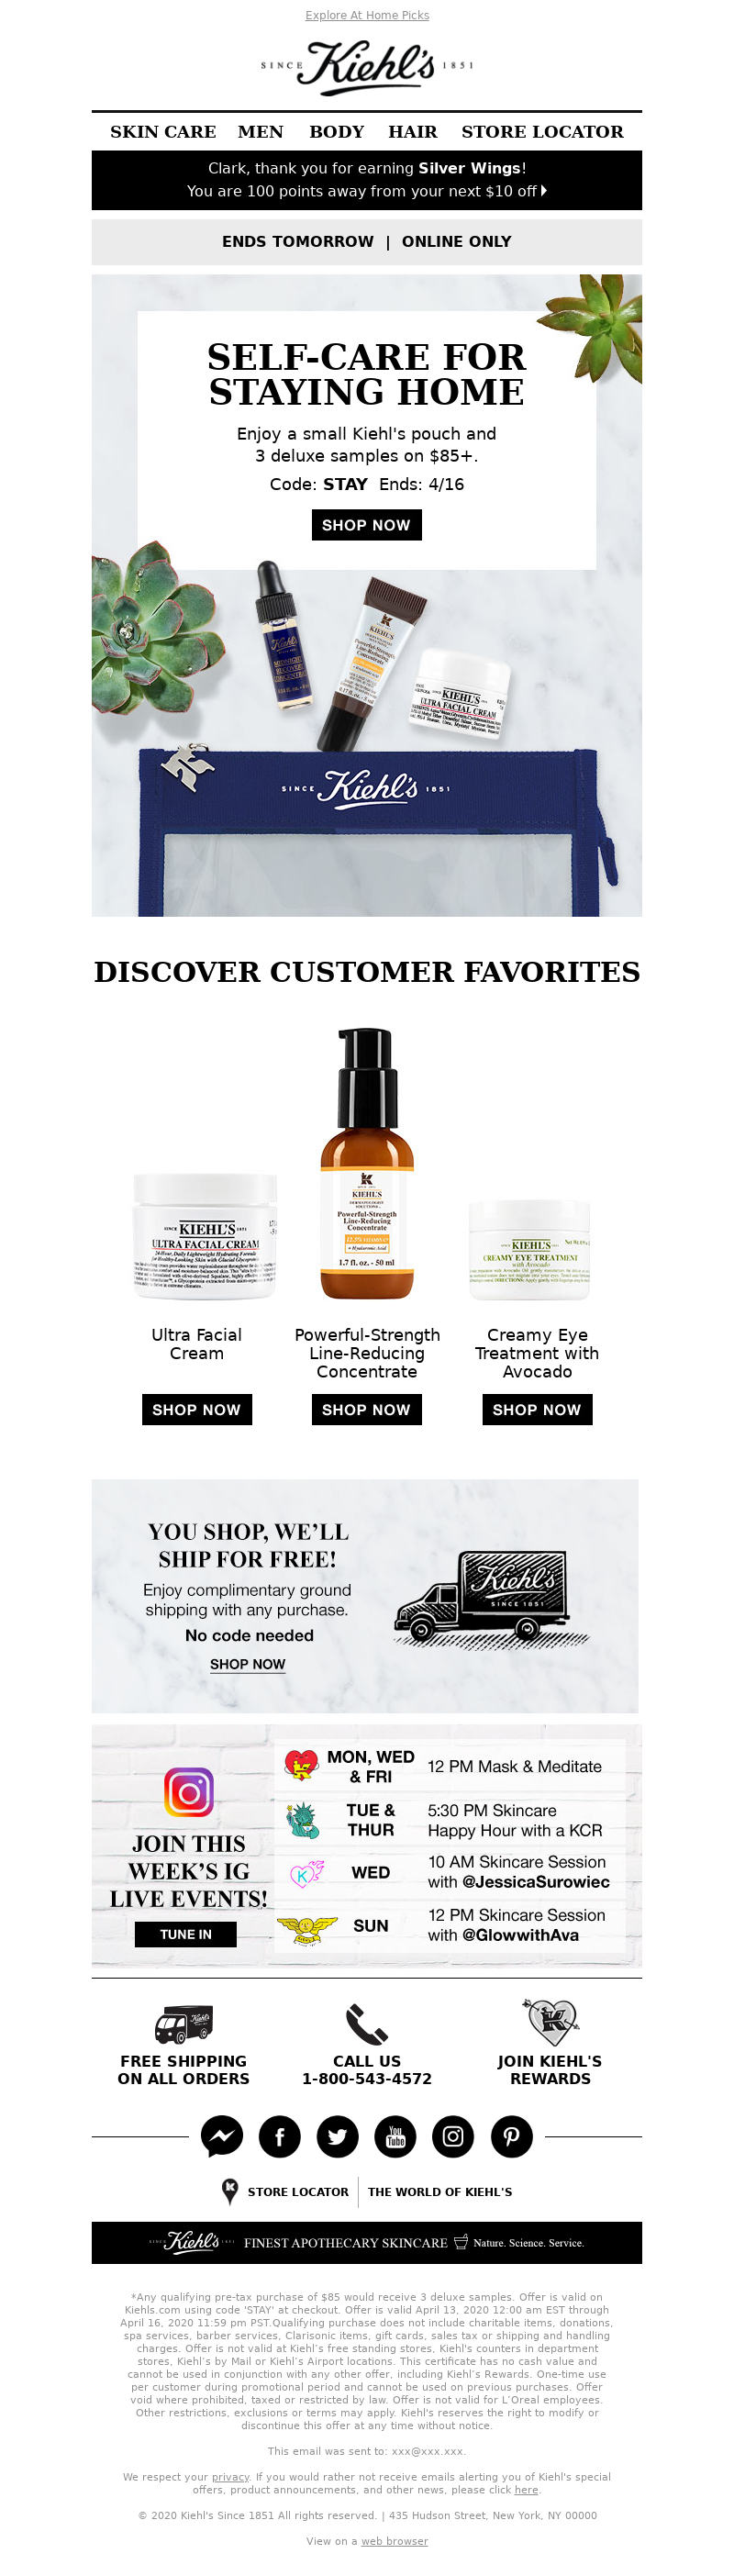 Explore At Home Picks Kiehl's SINCE 1851 Clark, thank you for earning Silve